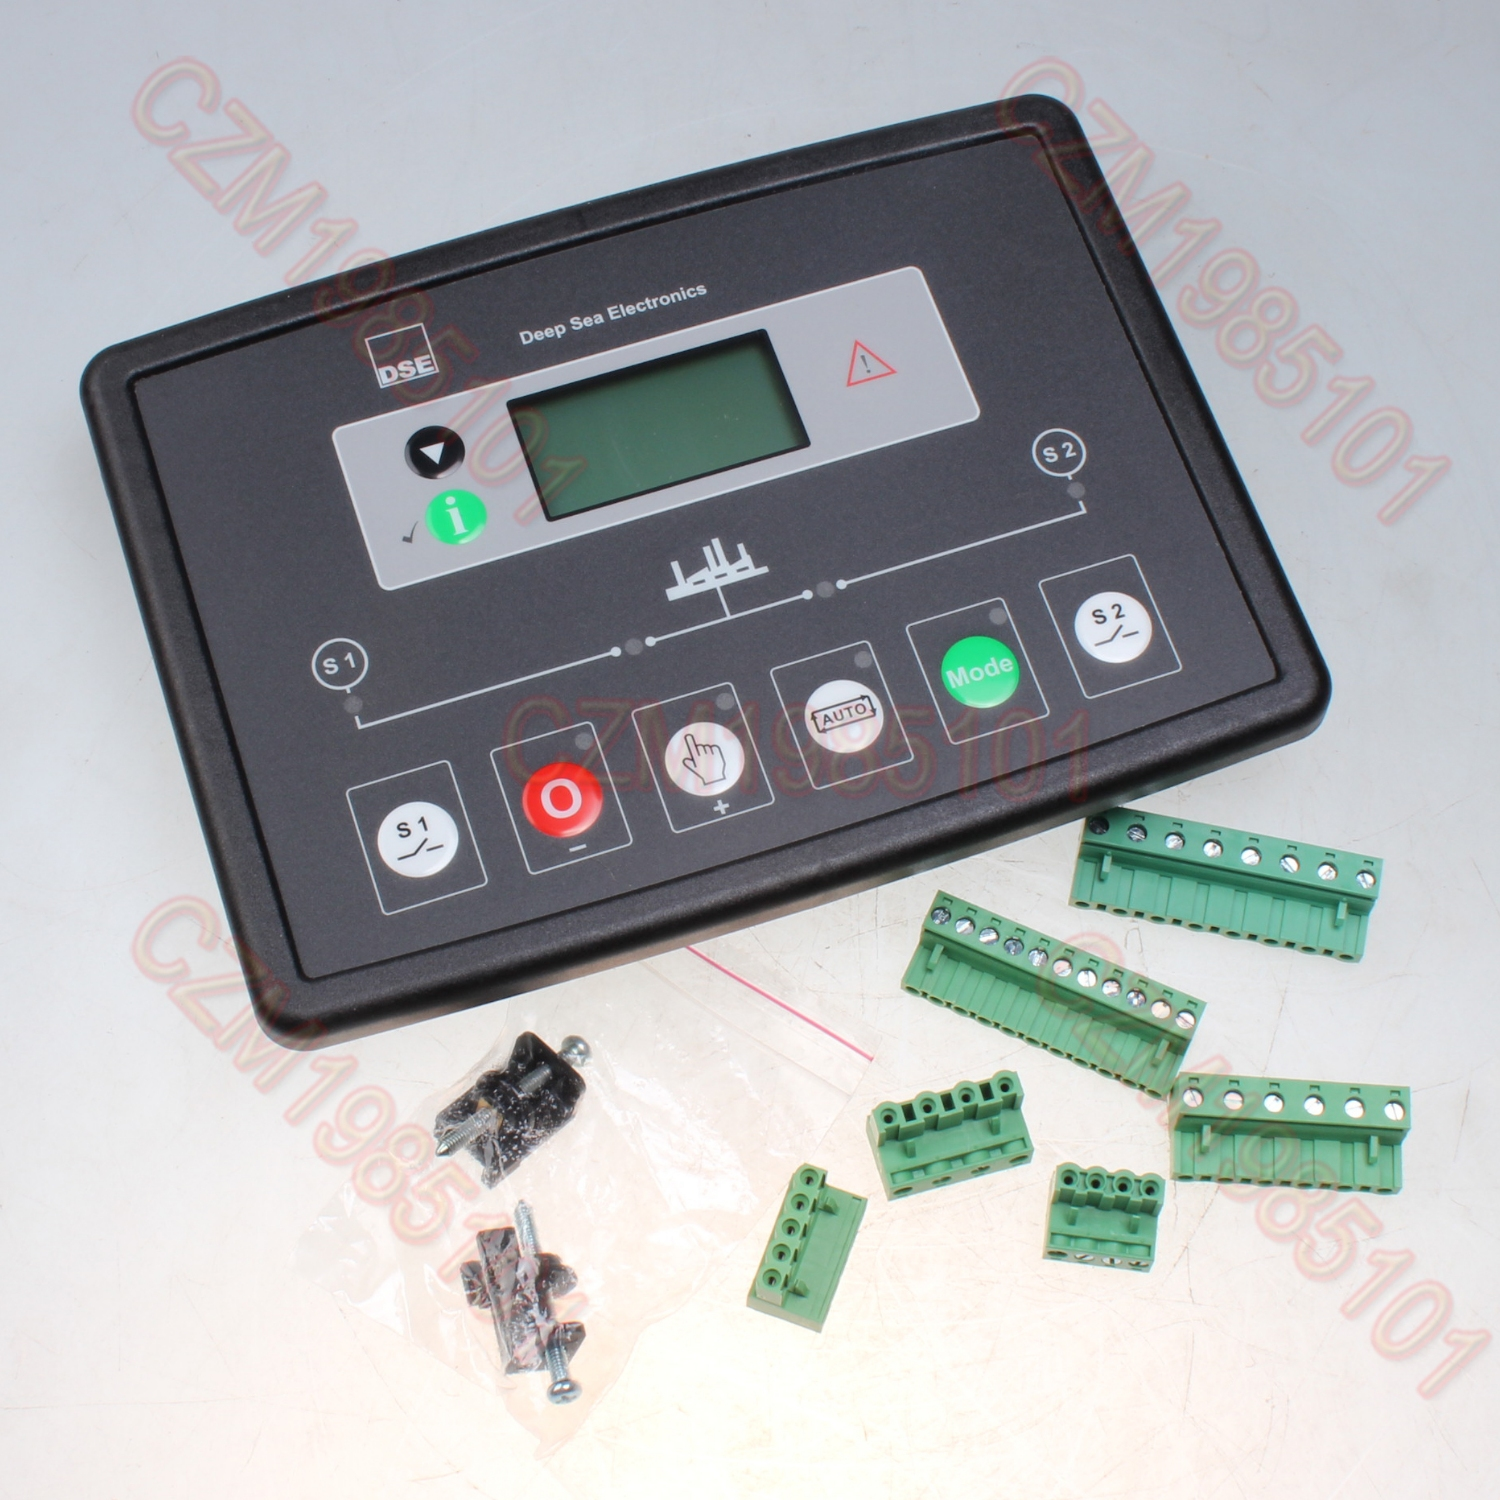 Deep Sea Electronics Dse334 For Auto Transfer Switch Control Module Details About Automatic Ats Controller Build Your Genats 334